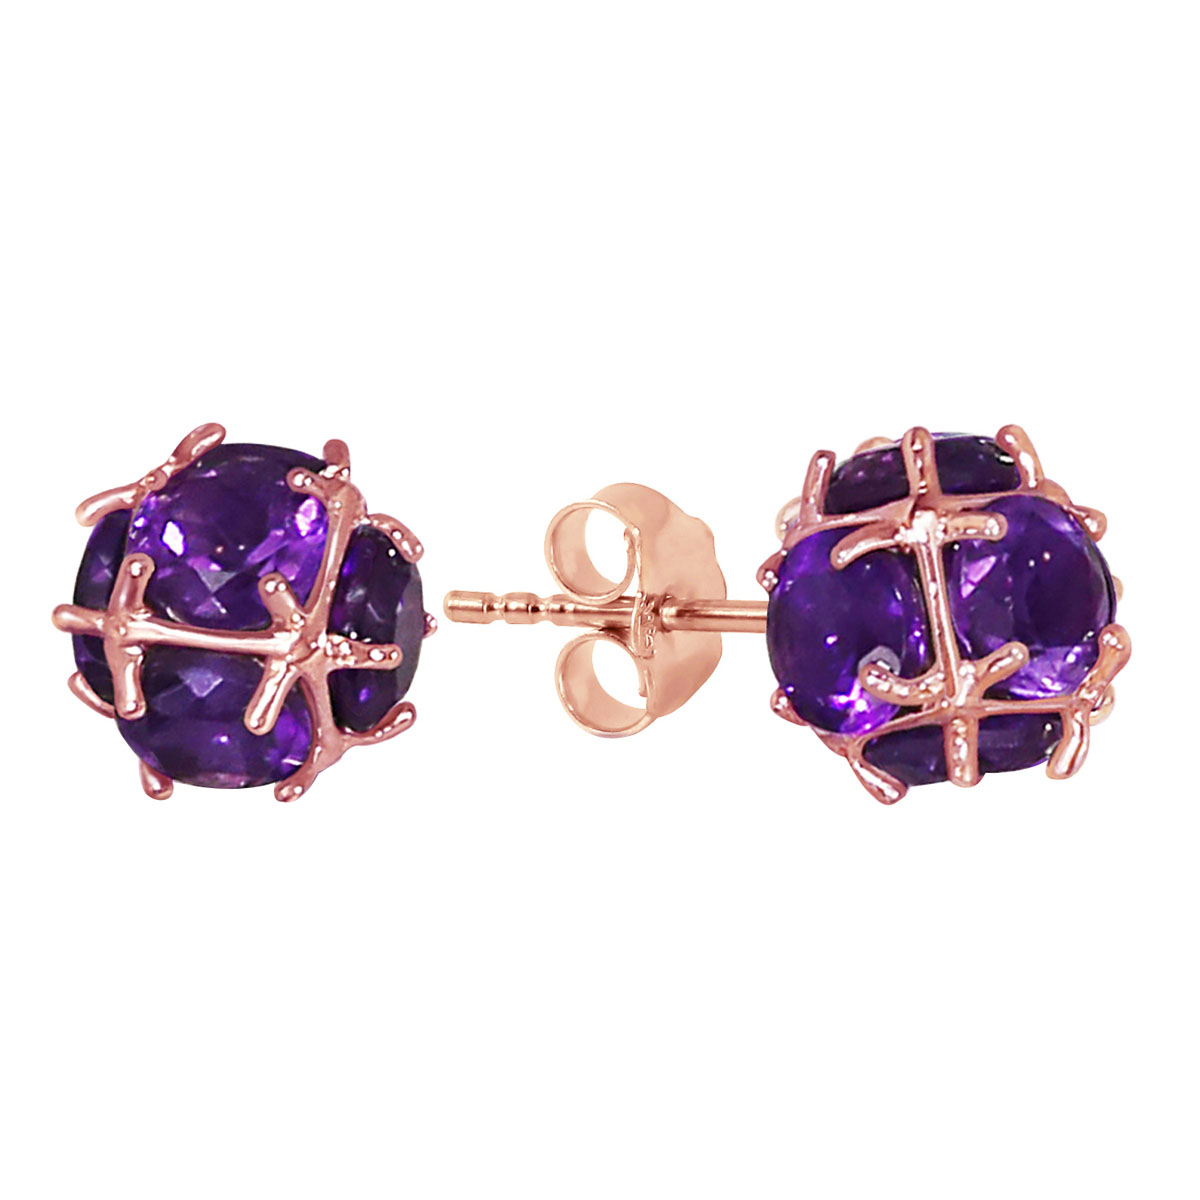 Amethyst Stud Earrings 5.7 ctw in 9ct Rose Gold